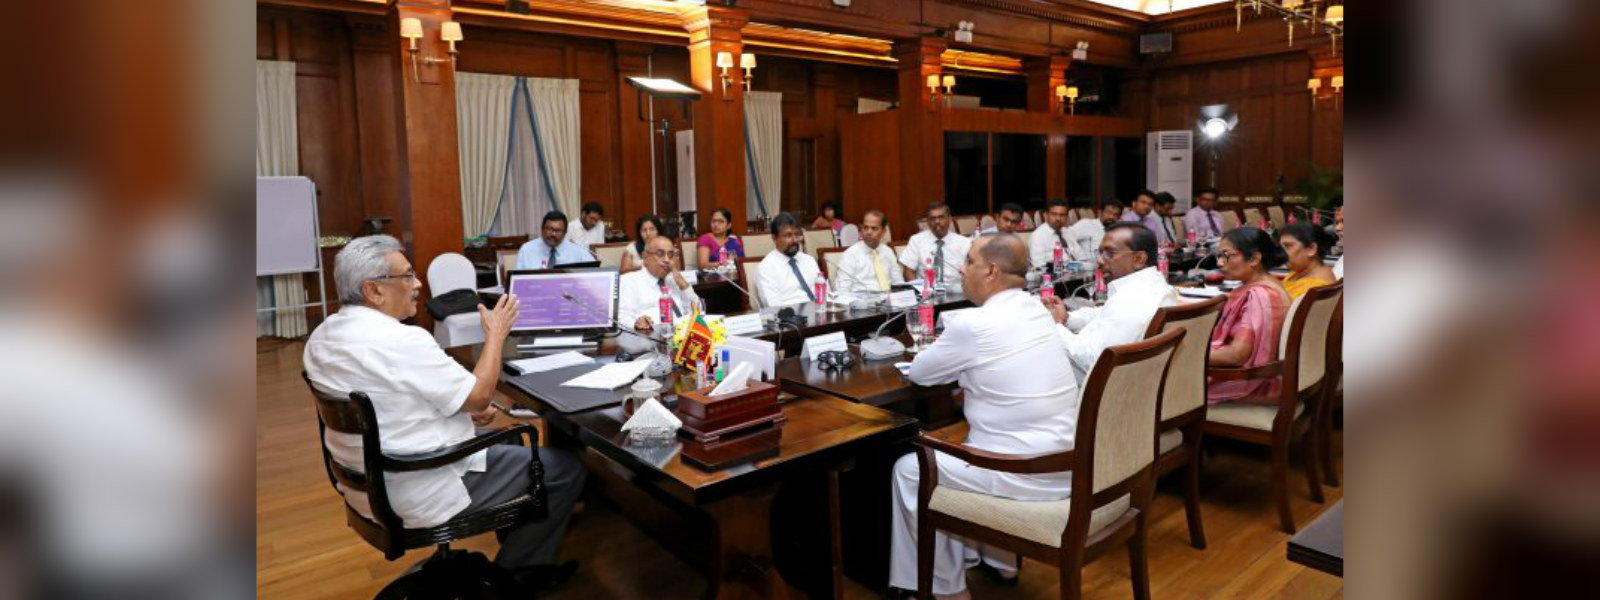 Second interim report on 4/21 attack handed over to President